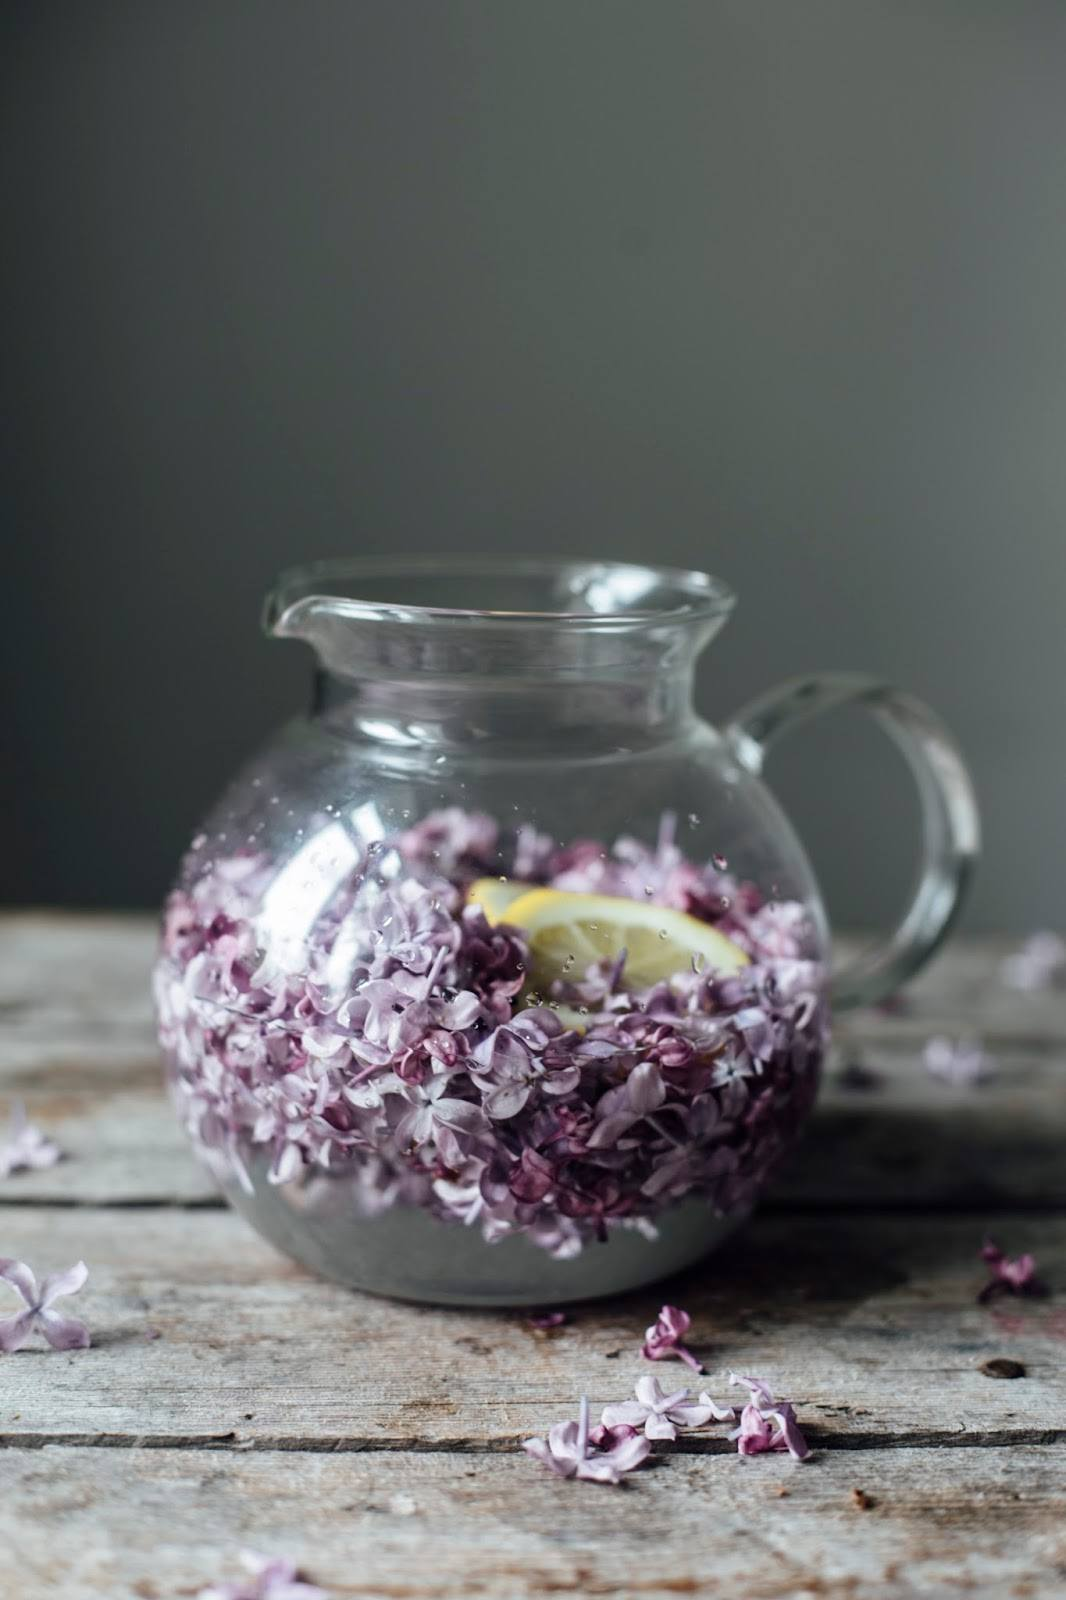 Lilac syrup in a glass pitcher.